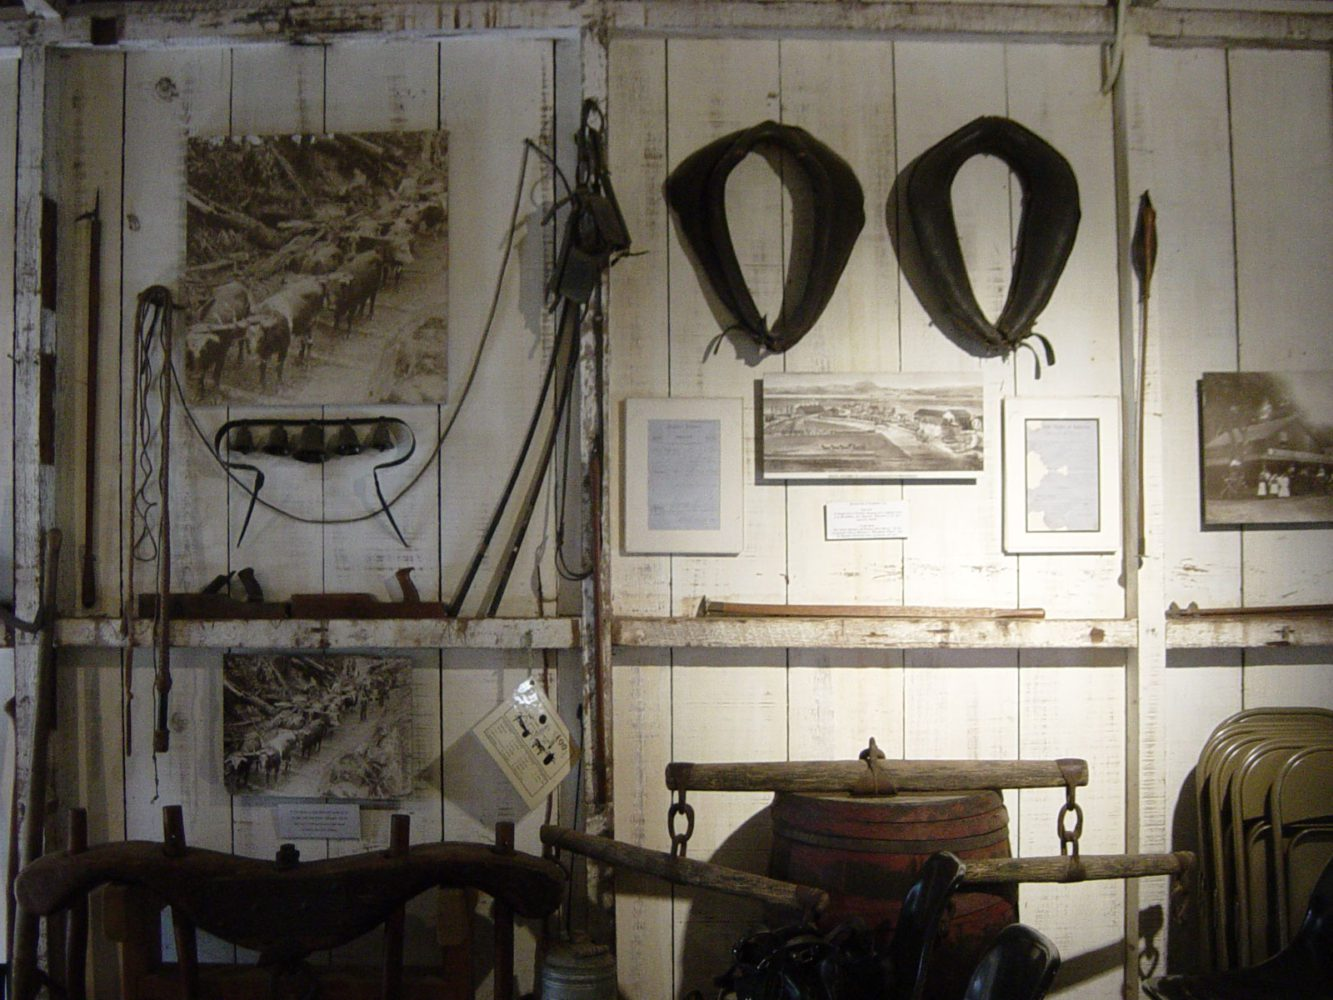 A display of antique tack and plows at the Woodside Store